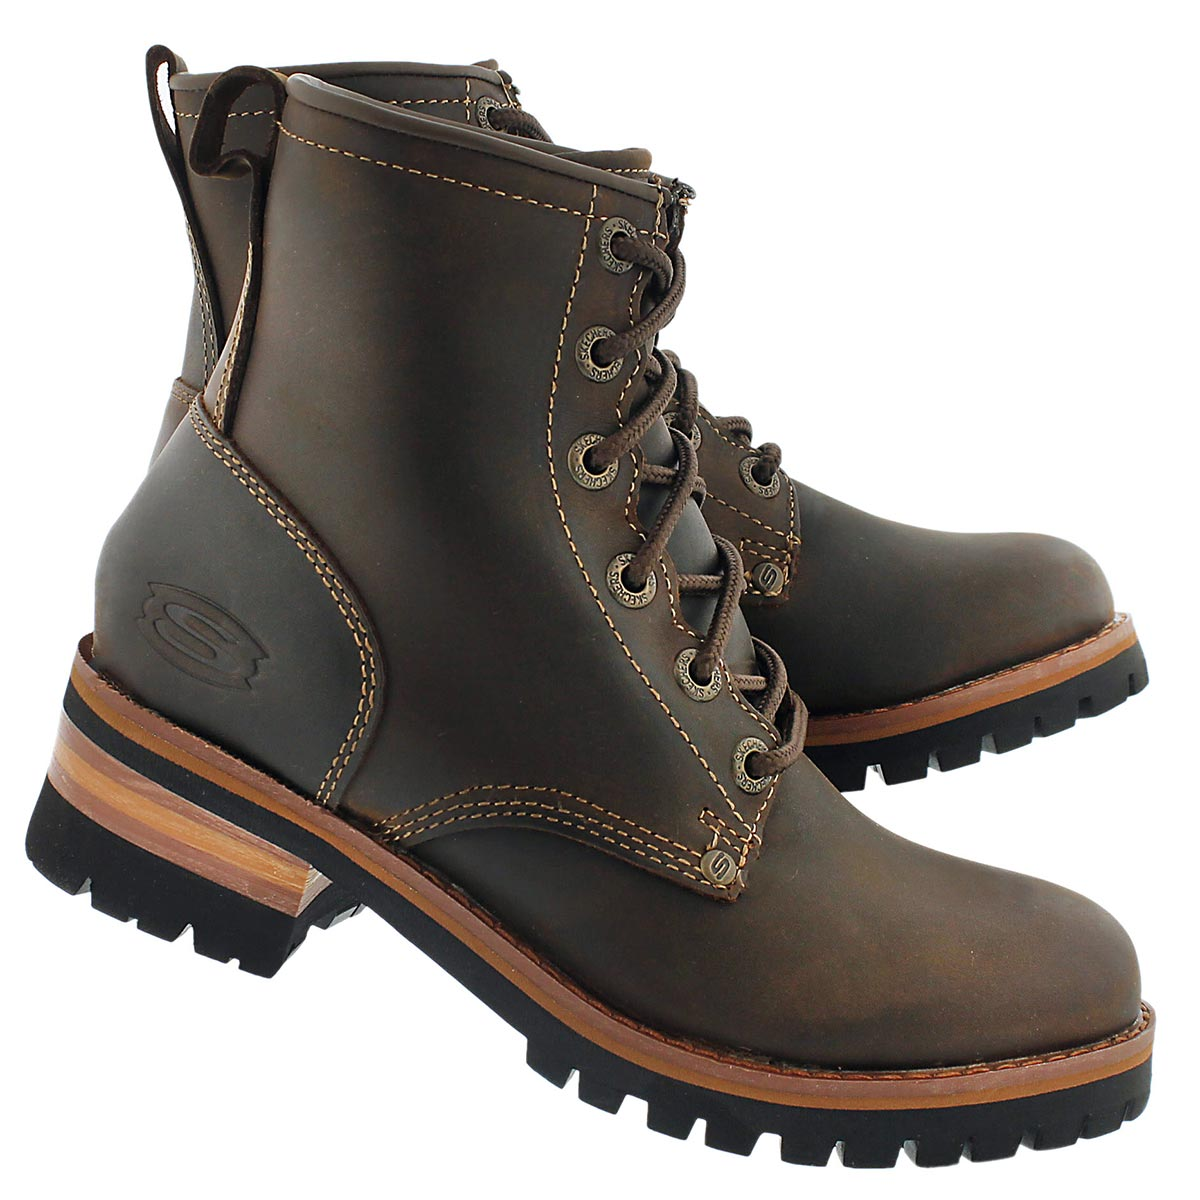 Lds Laramie 2 dk brn lace up casual boot